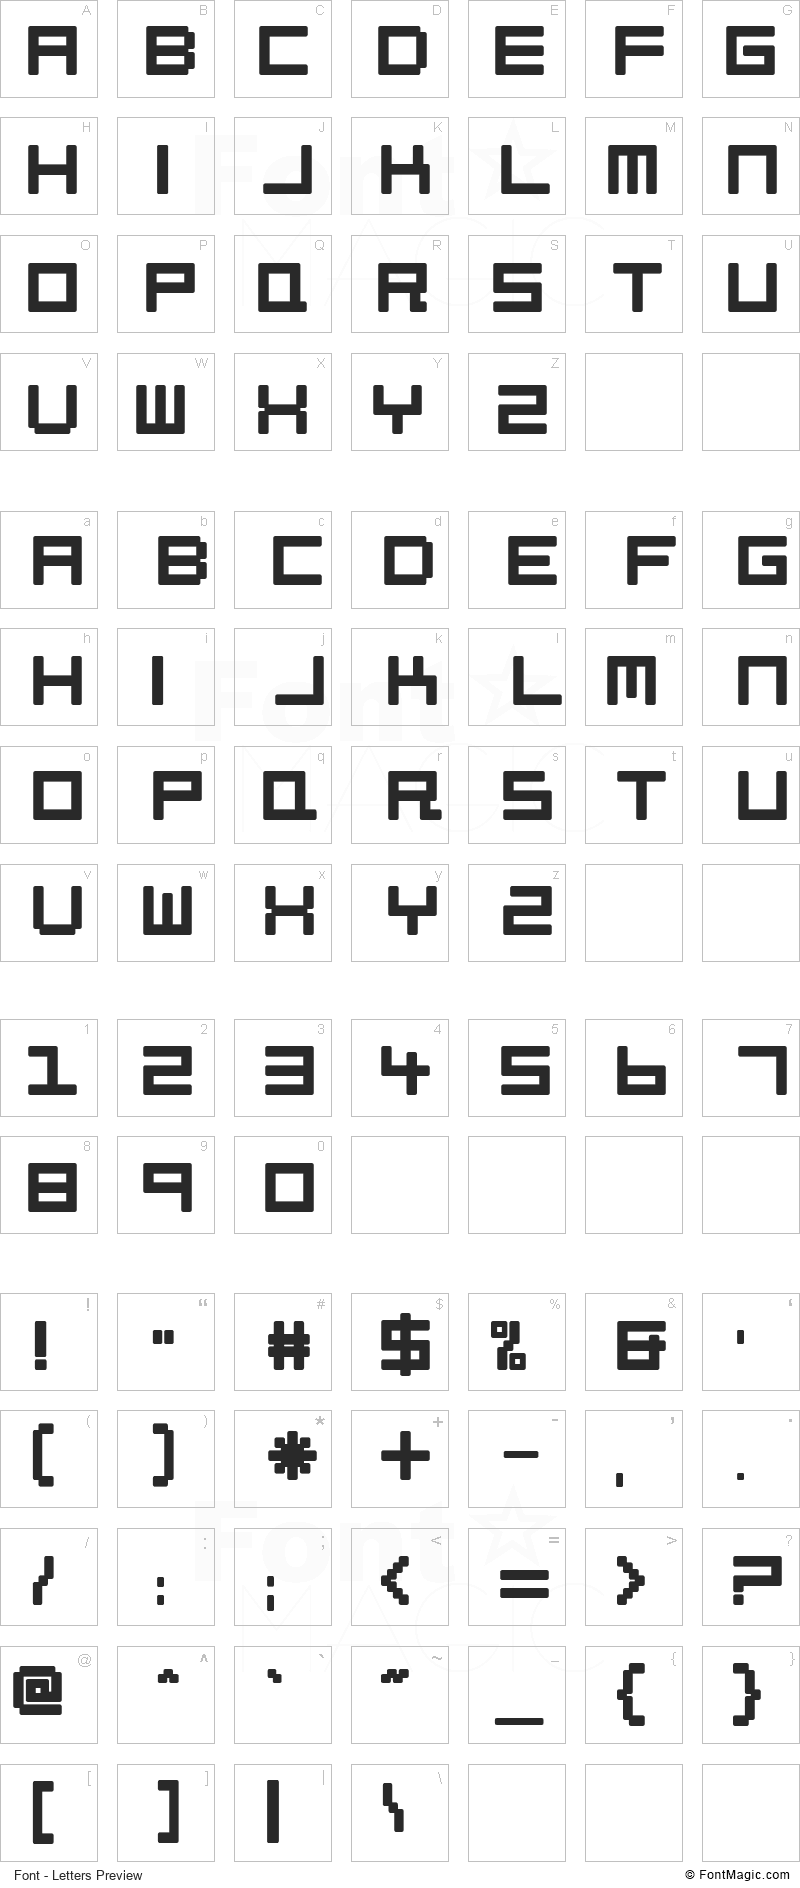 Petitinho Font - All Latters Preview Chart